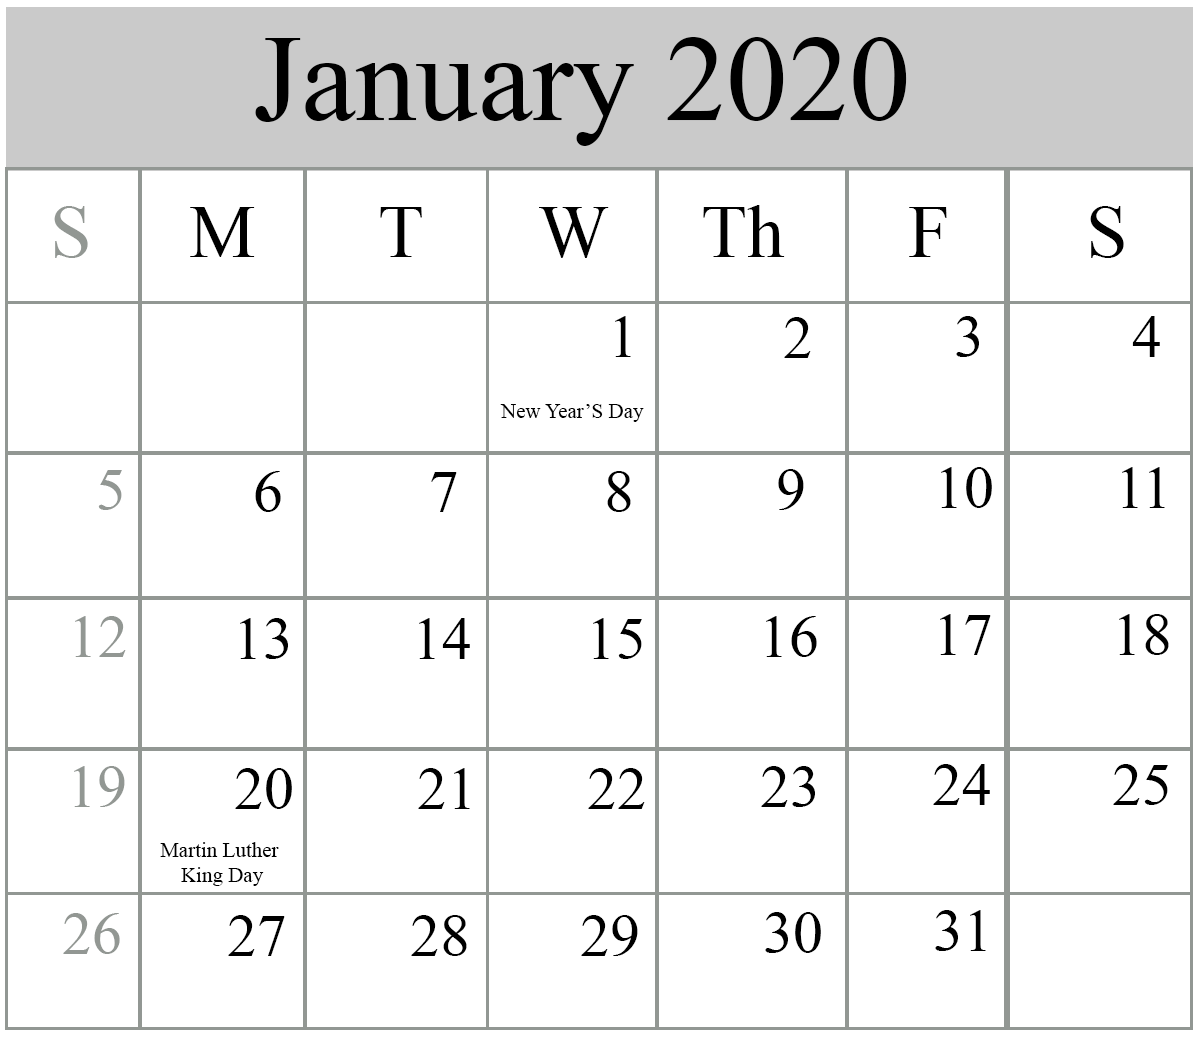 Jan 2020 Calendar With Holidays Free Blank January 2020 Calendar Printable in PDF, Word, Excel